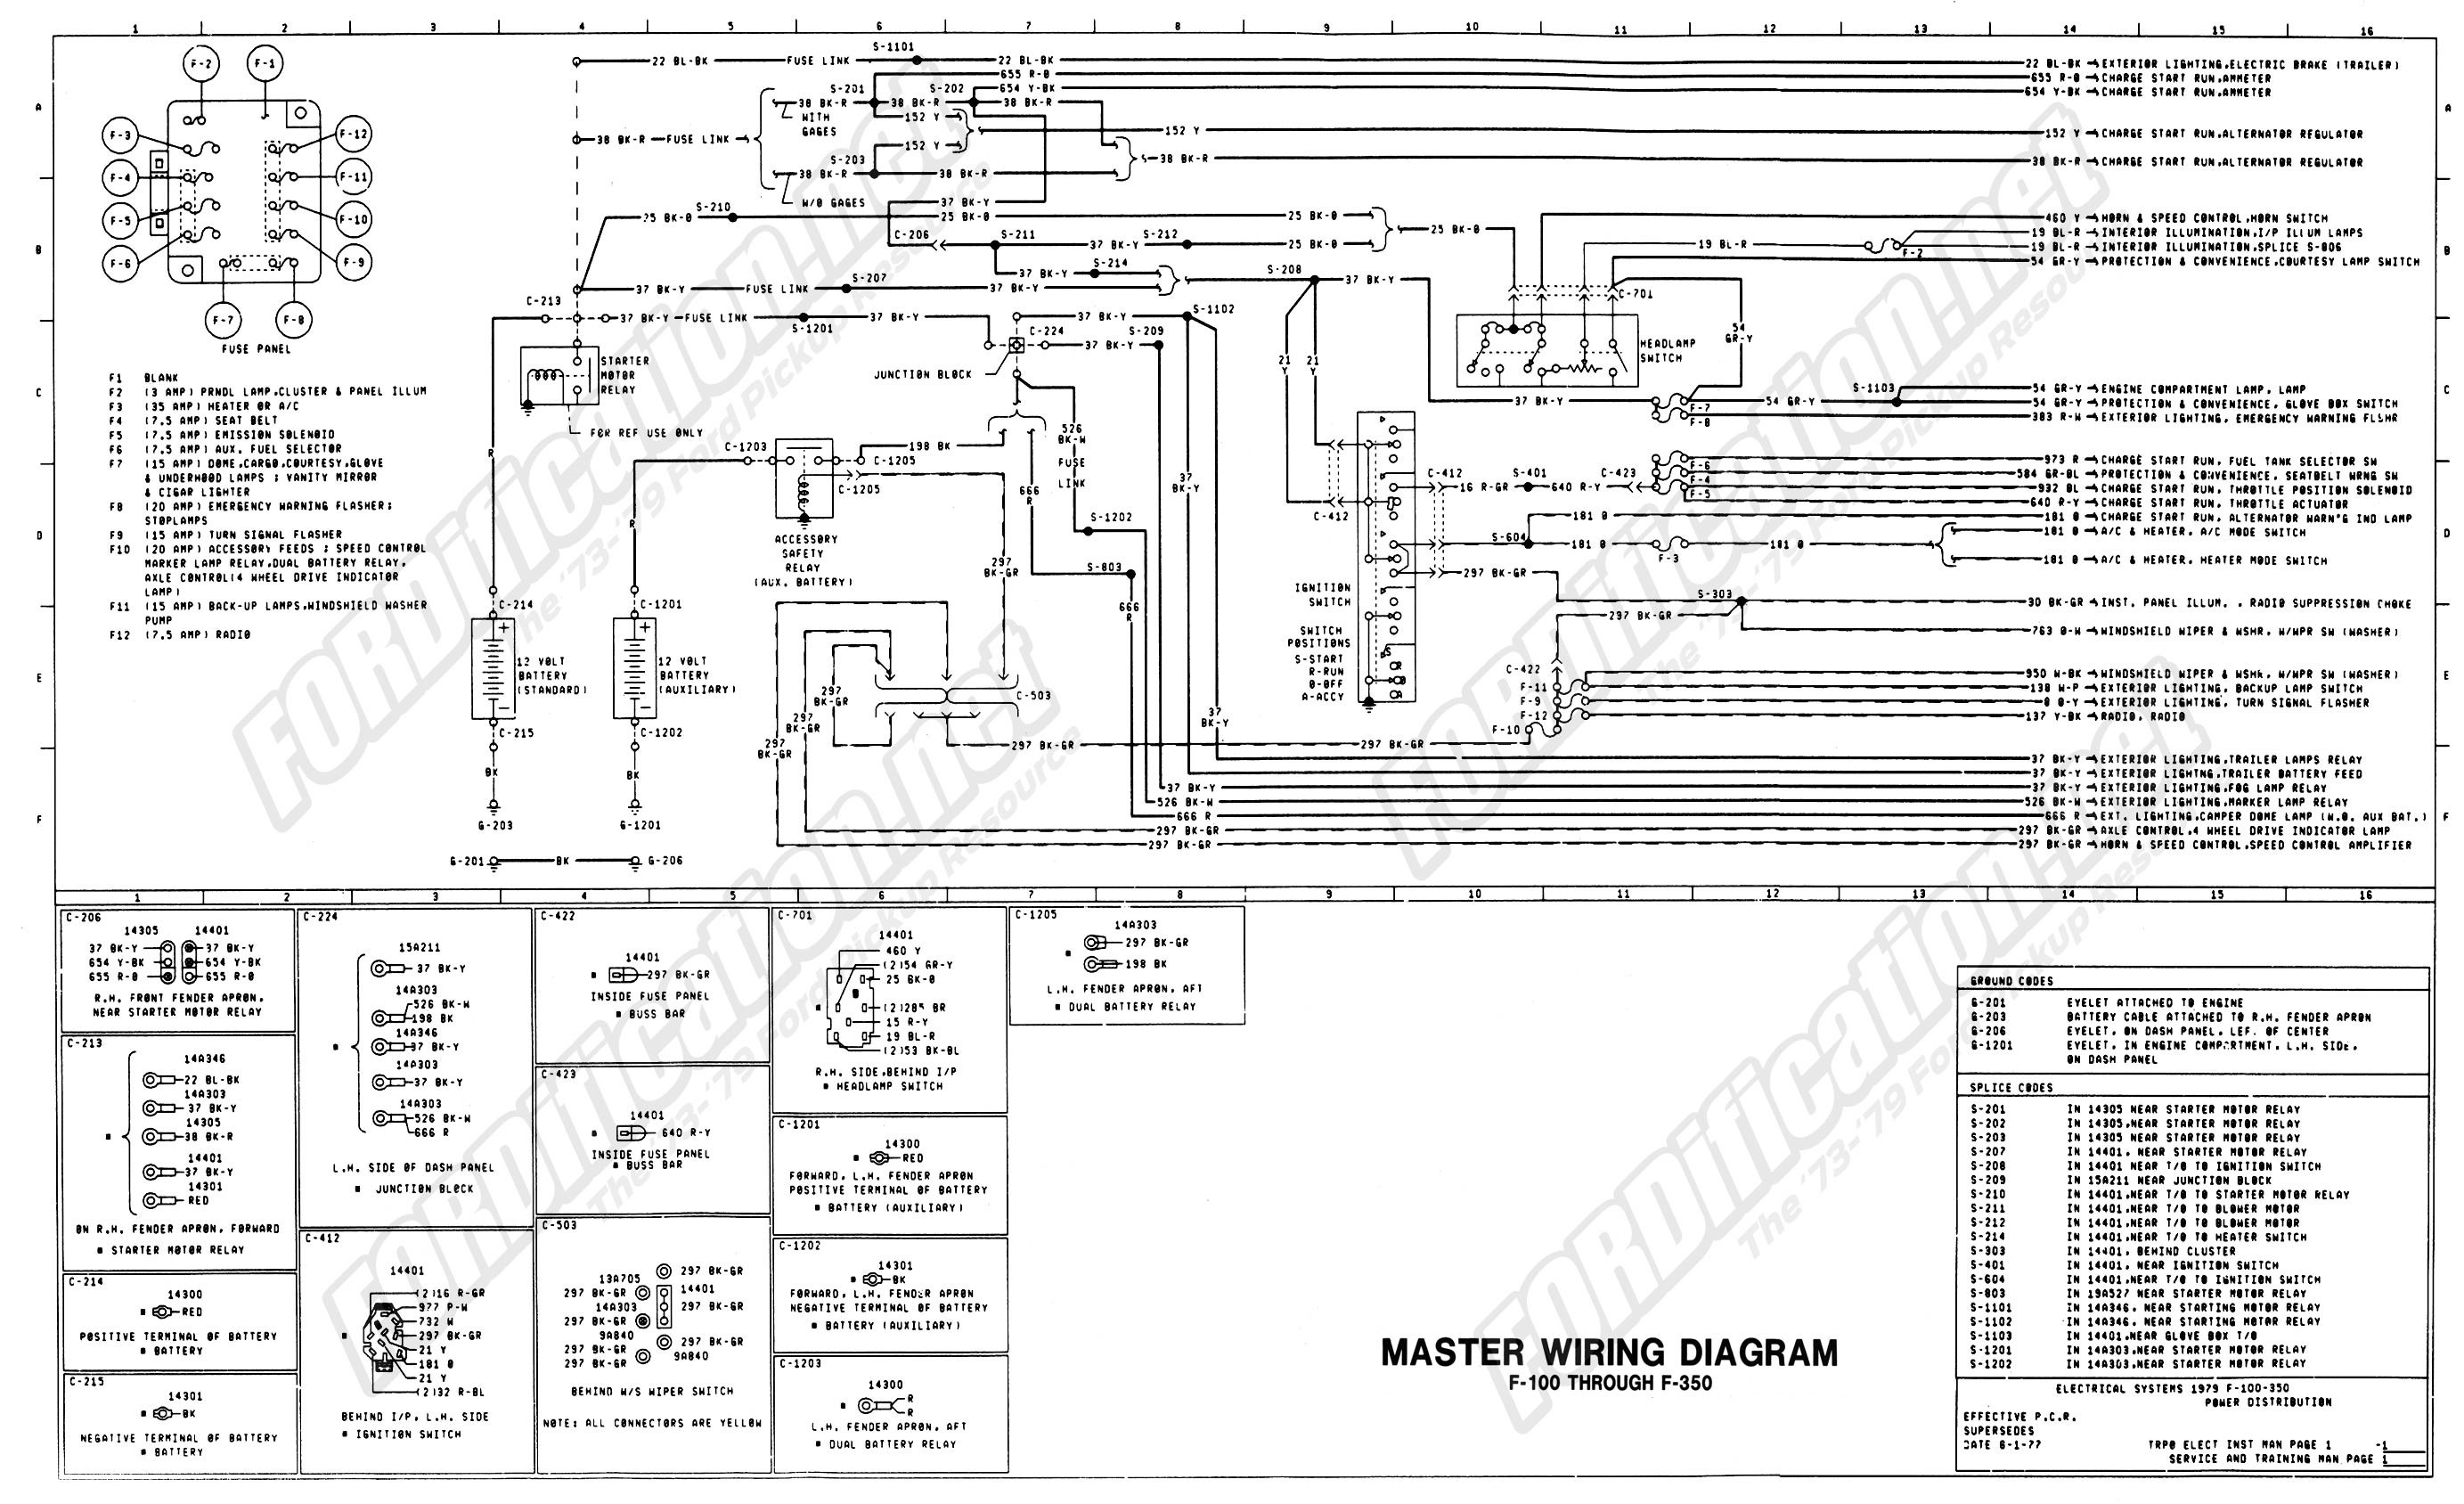 Silverado Tail Light Wiring Diagram F150 Wiring Harness Further 1970 ford torino Ignition Wiring Diagram Of Silverado Tail Light Wiring Diagram